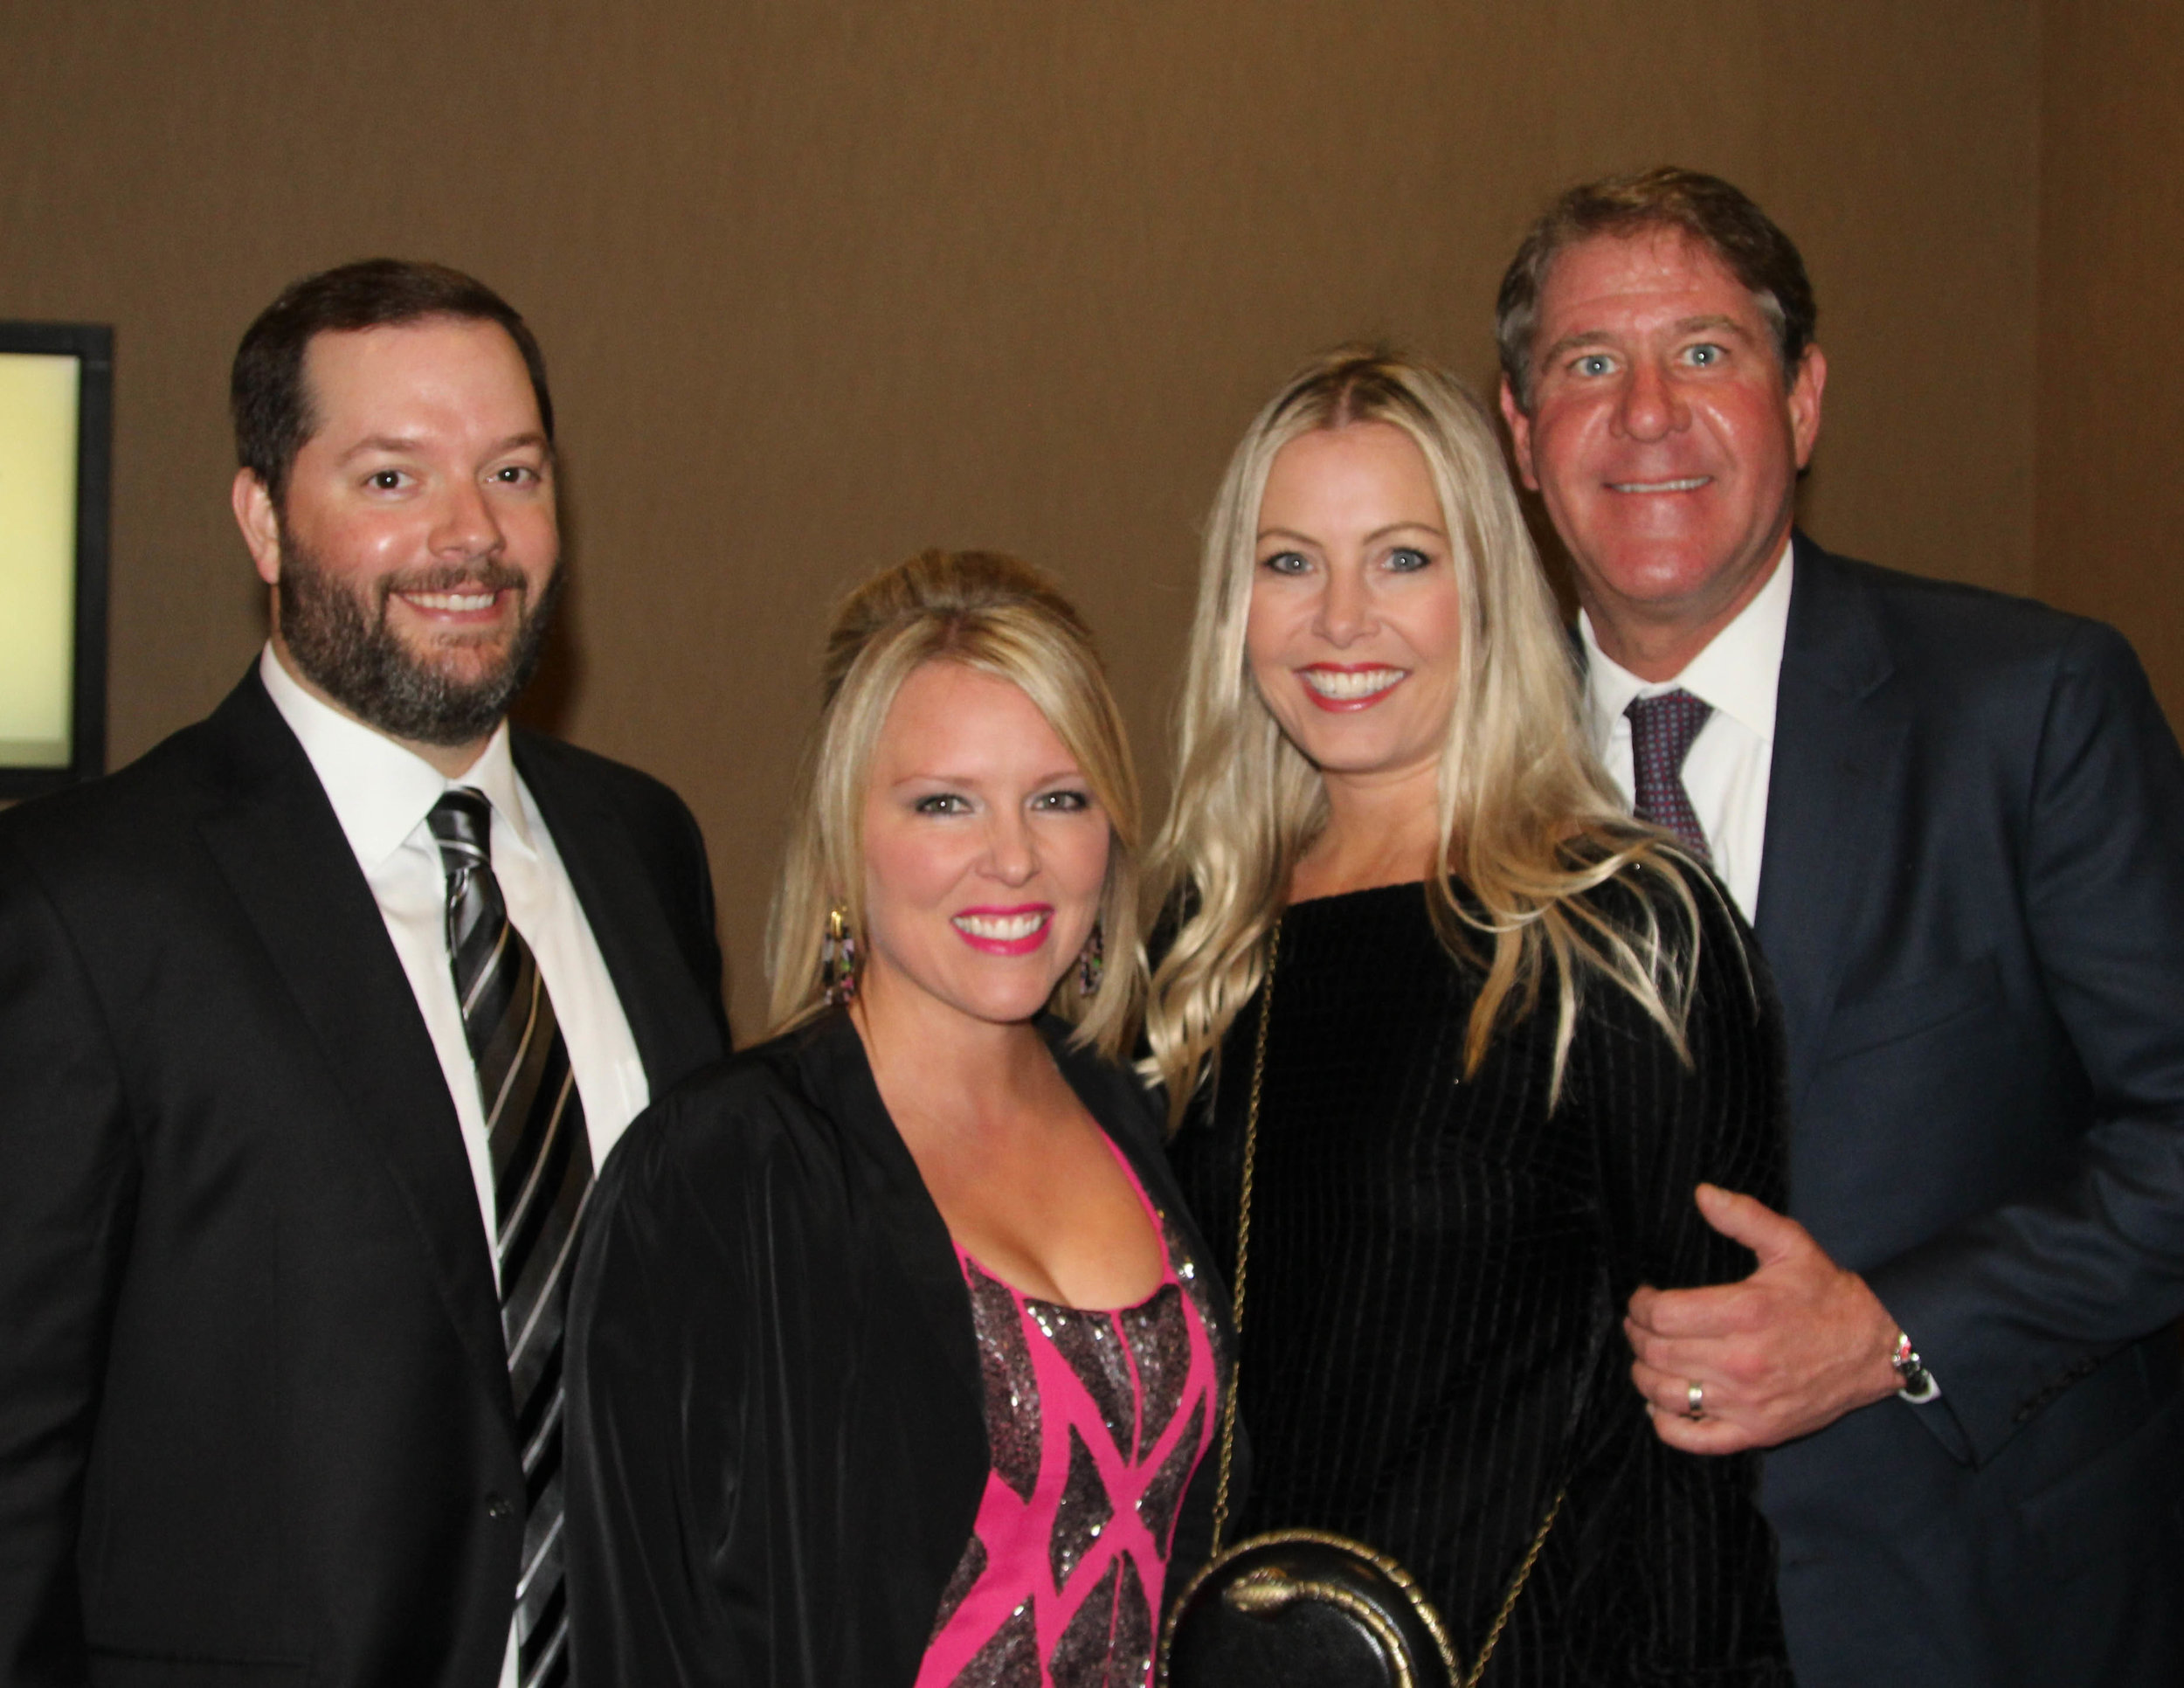 Dr. Chad and Danielle Patterson with Whitney and Vickers Fuqua